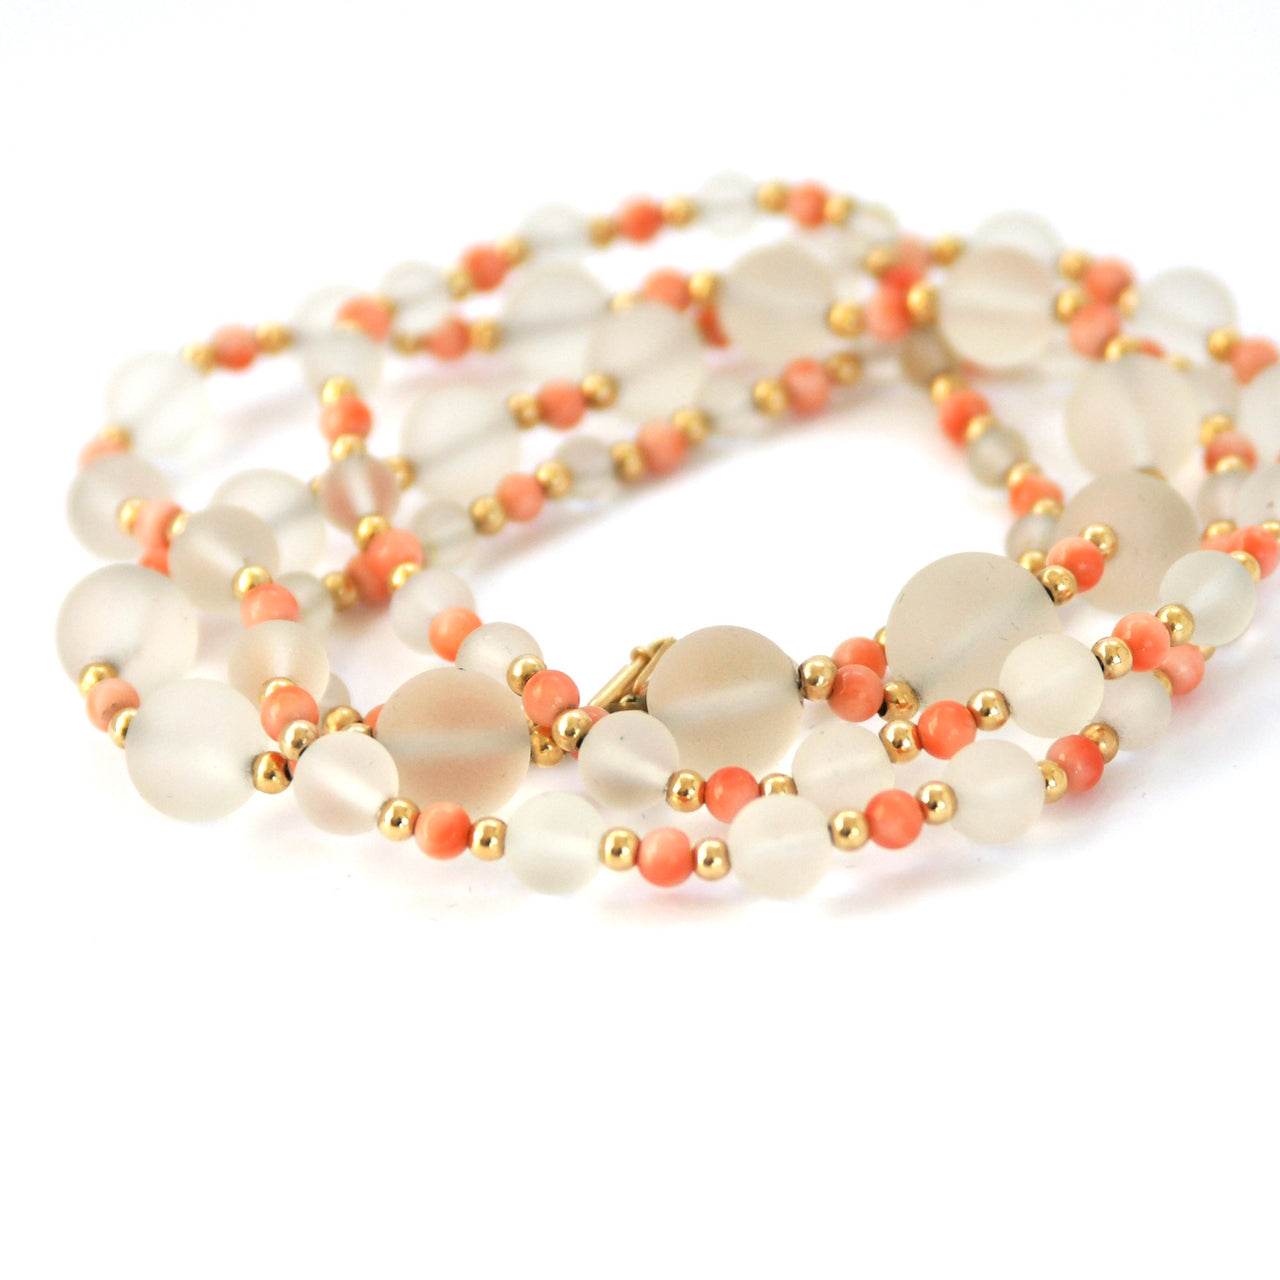 opaque beads, coral, rolled gold, vintage beads, vintage beads necklace